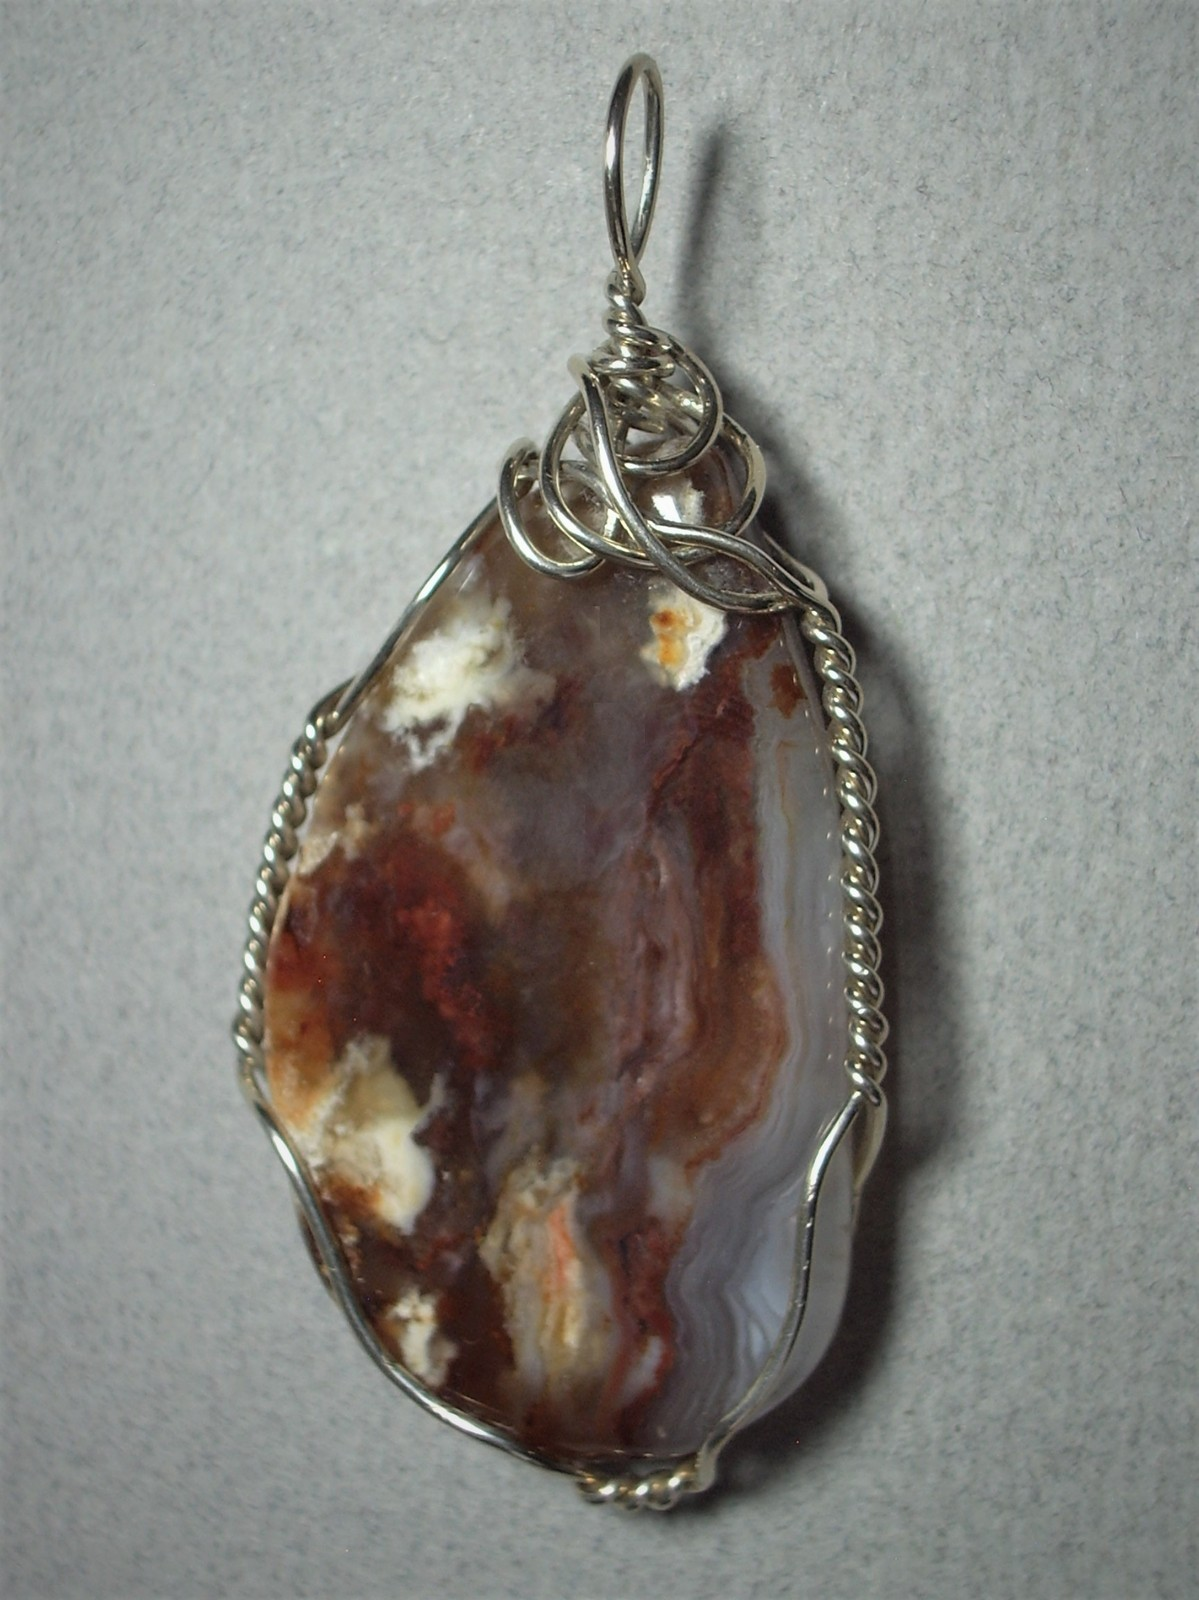 Primary image for Coprolite Petrified Dinosaur Dung Pendant Wire Wrapped .925 Sterling Silver by J